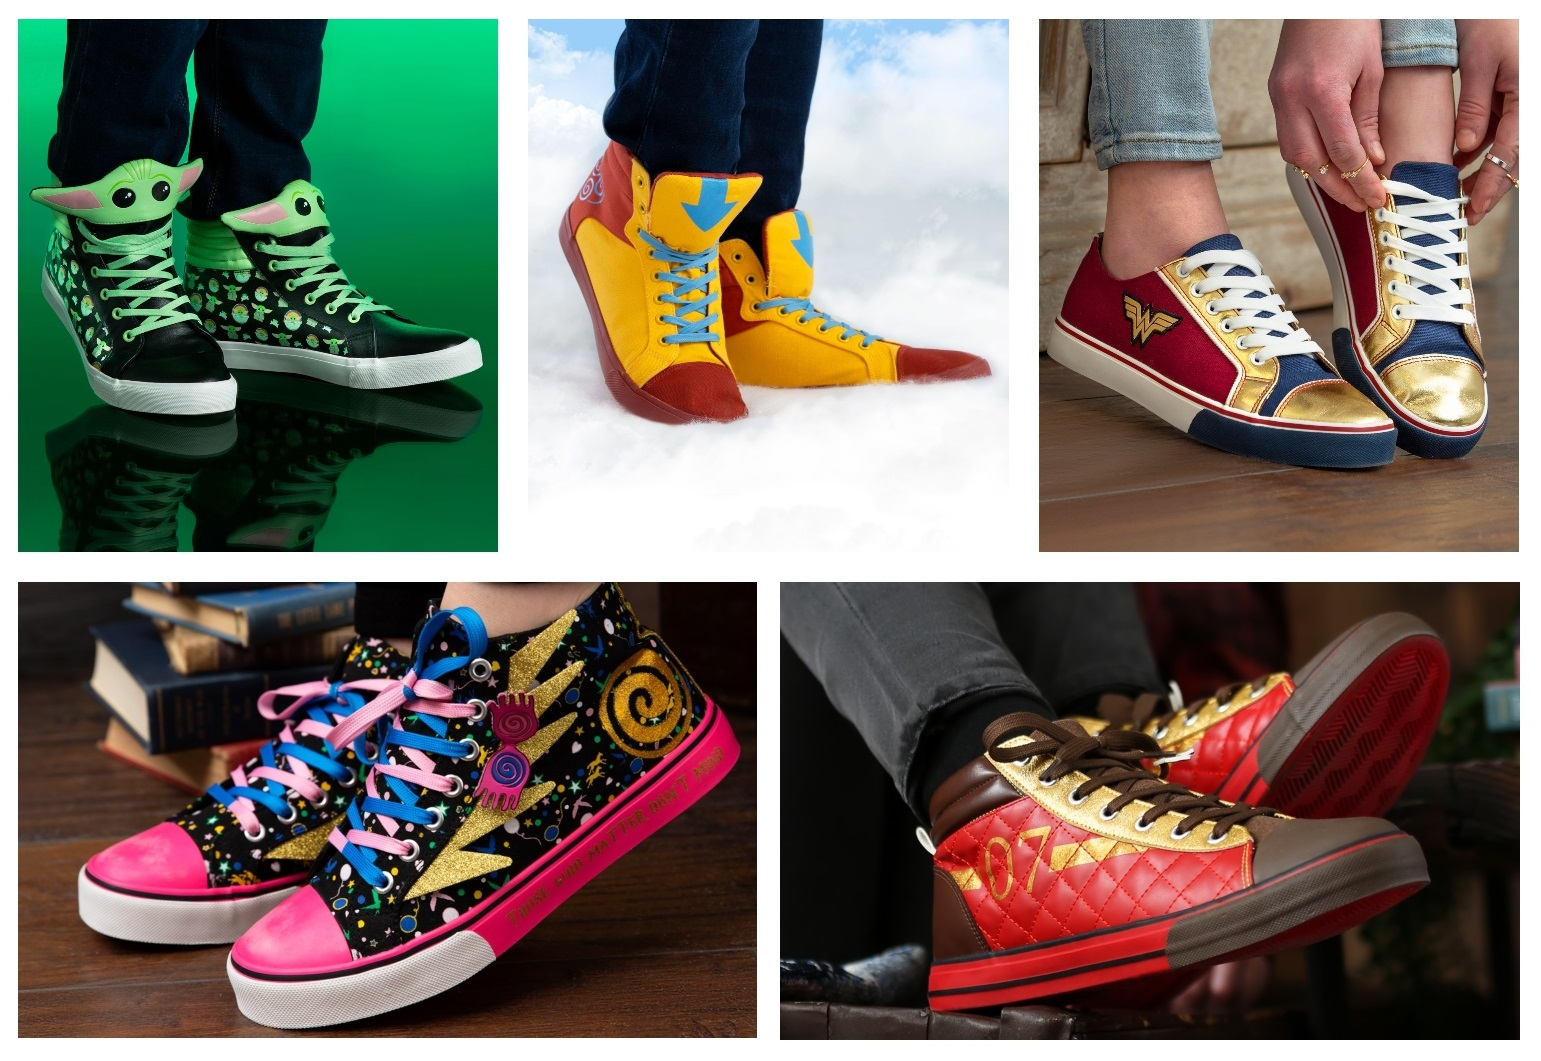 Pop Culture Shoes for Adults